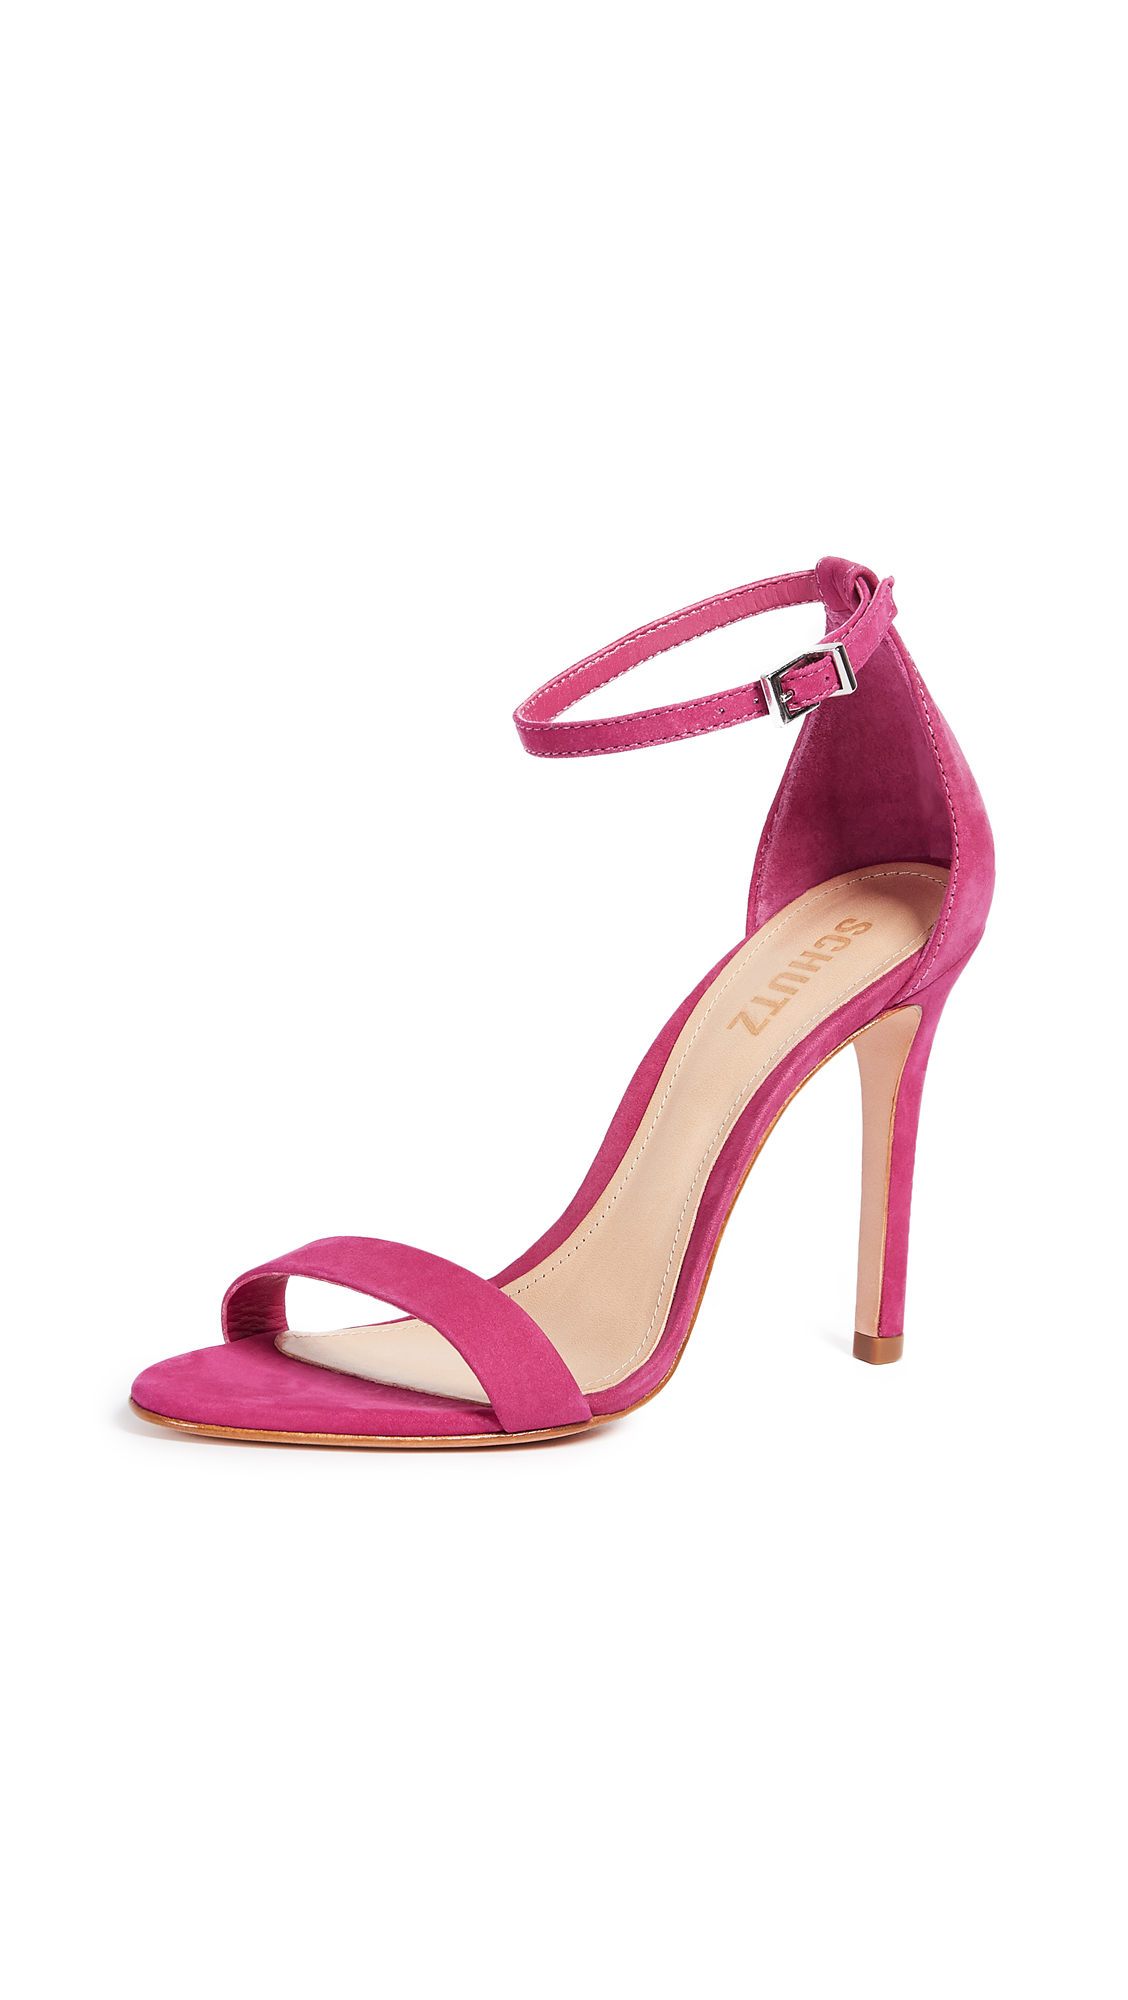 Schutz Cadey Lee Sandals - Bright Rose